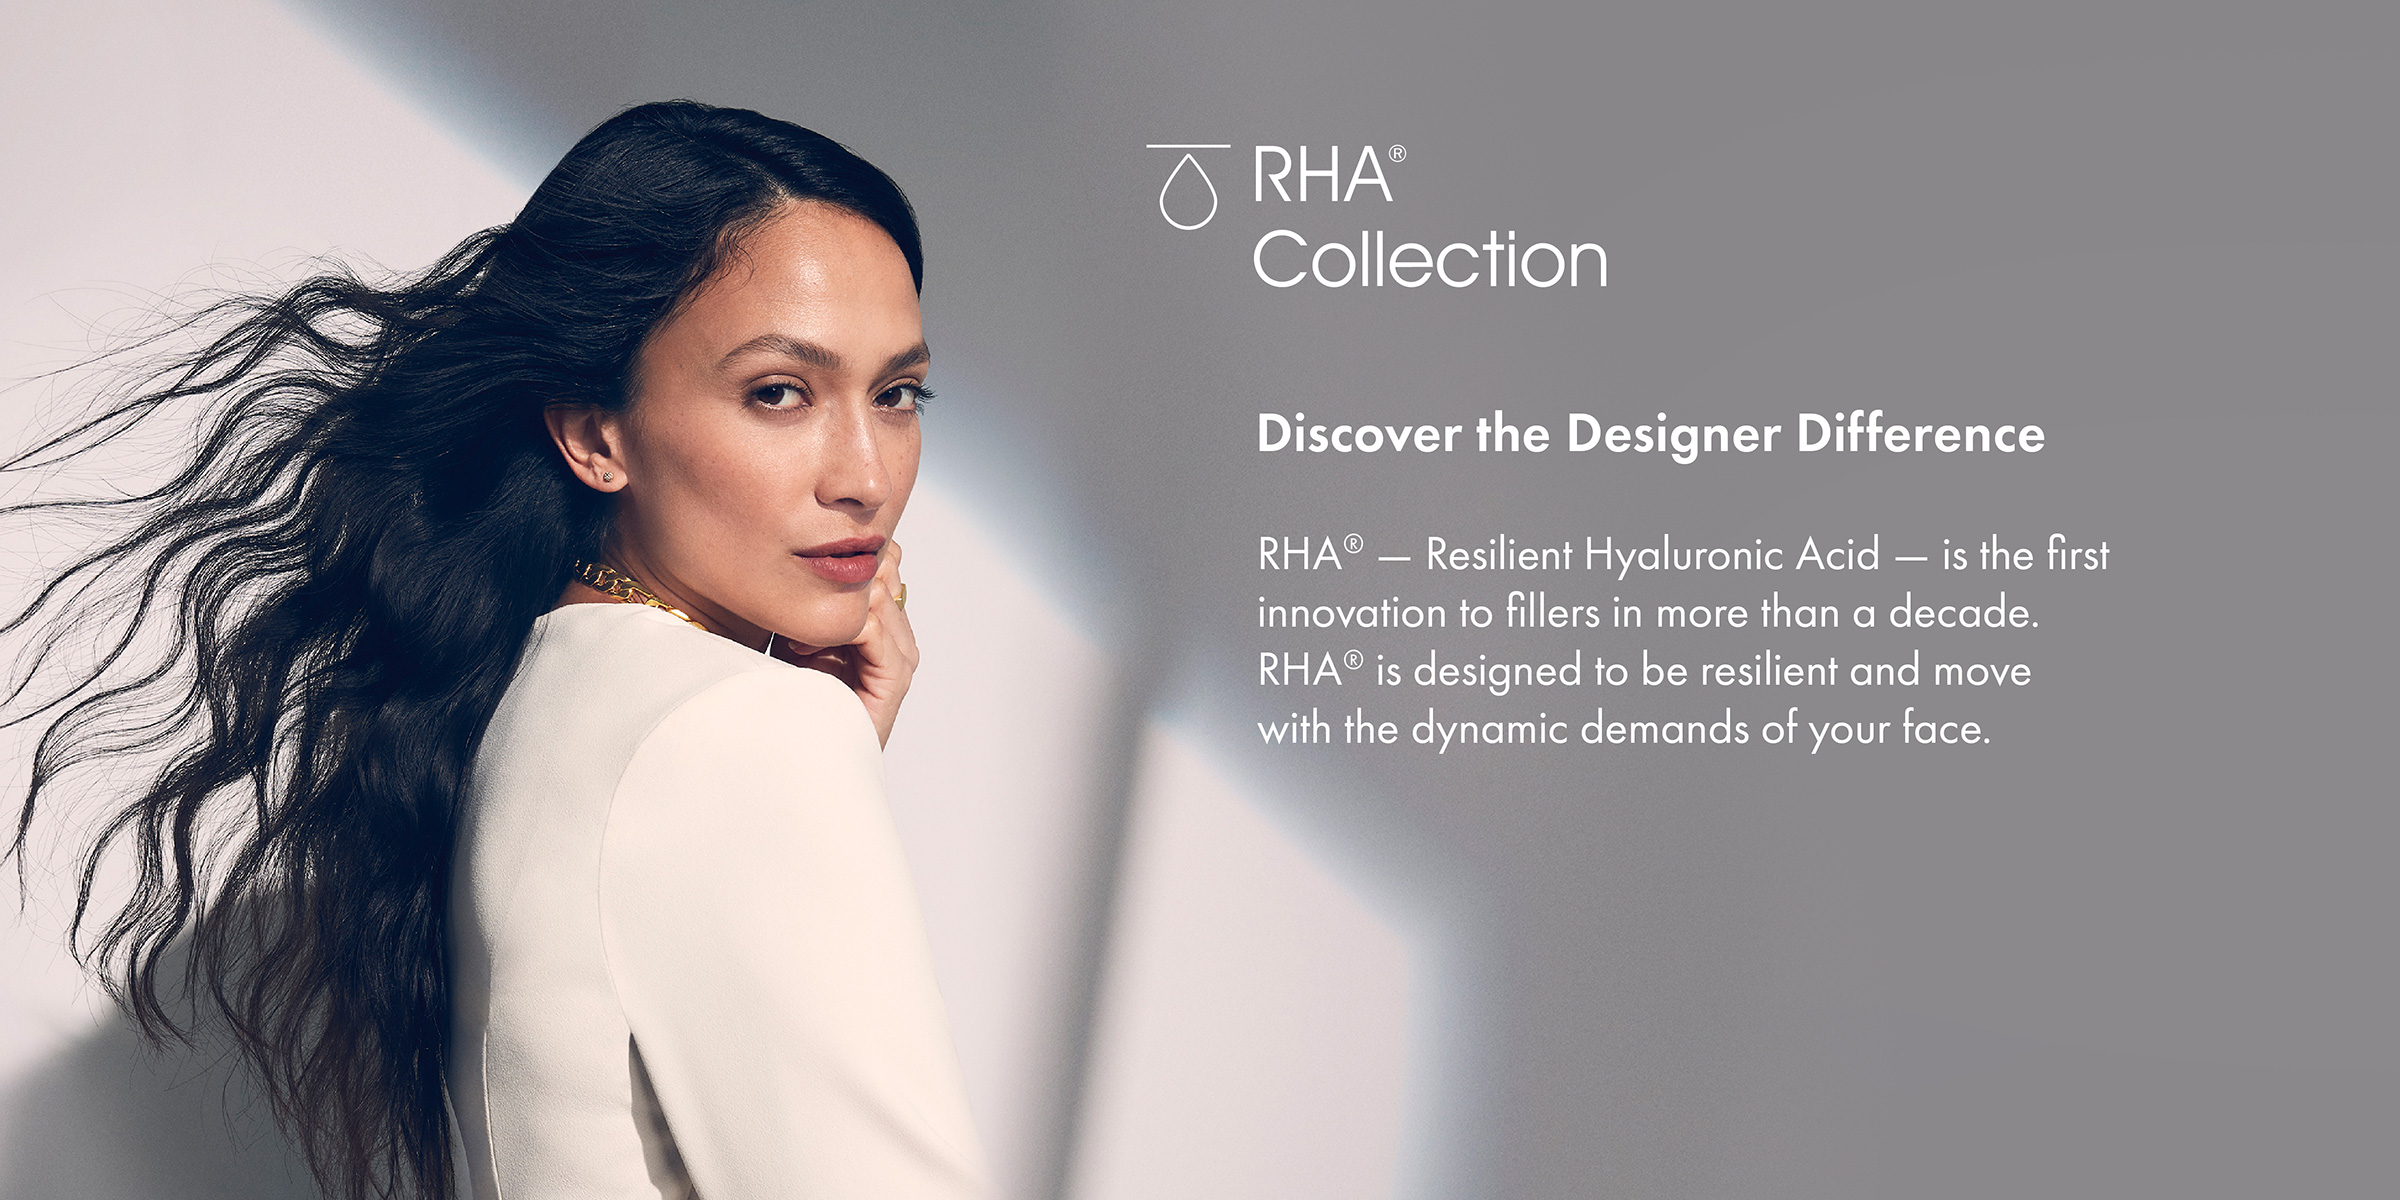 rha collection